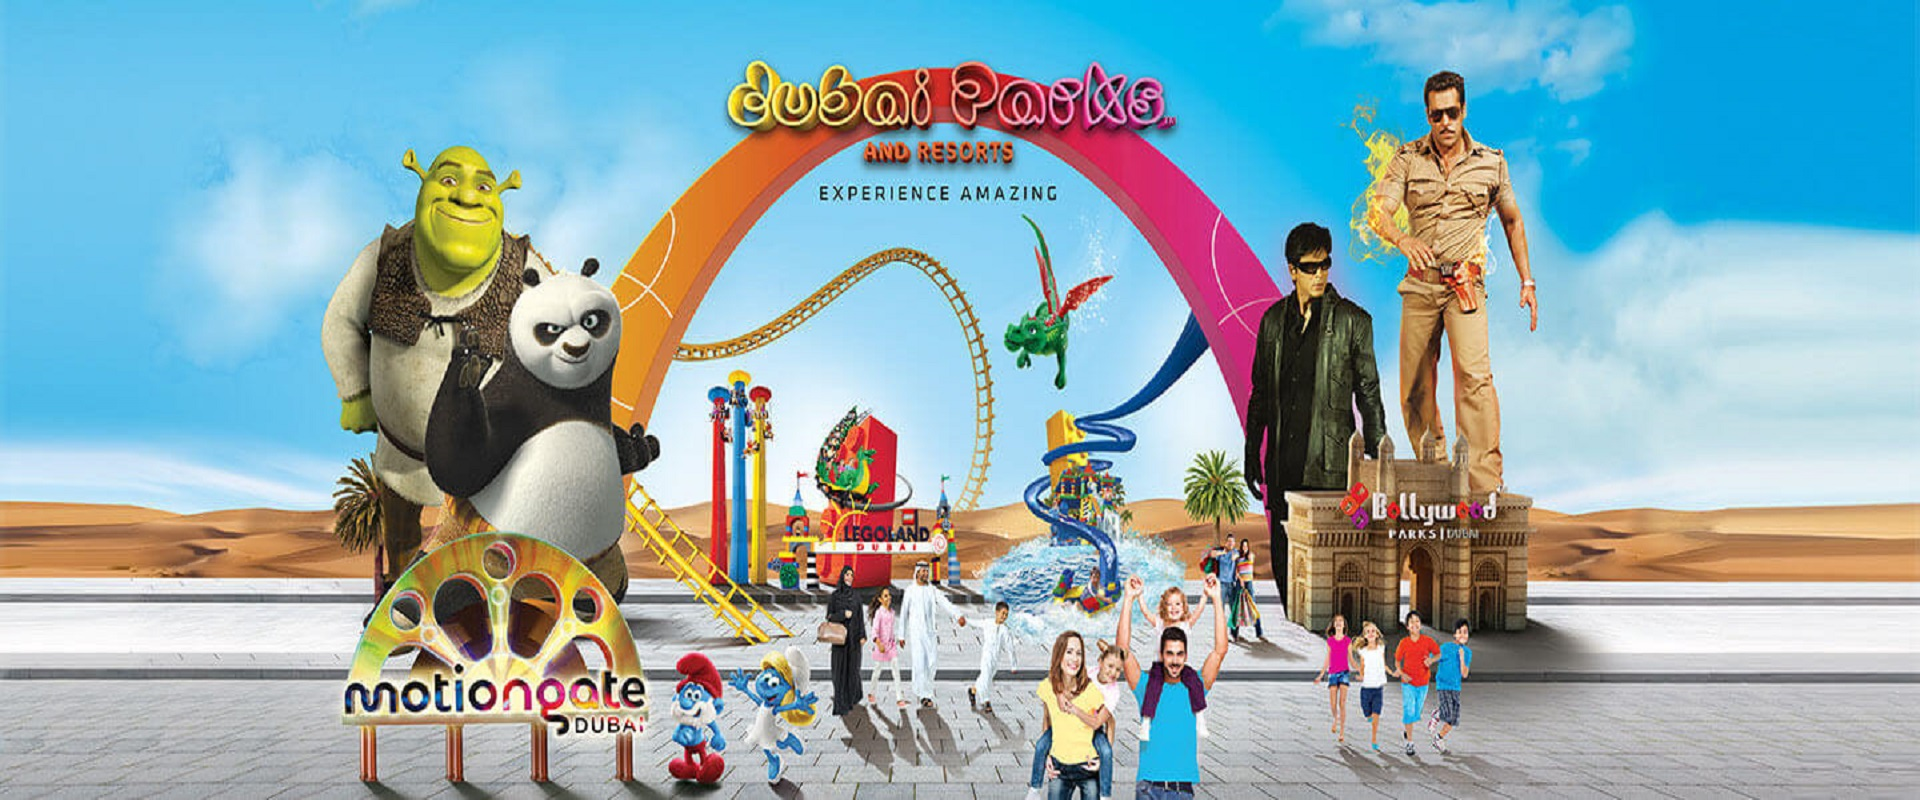 Dubai Parks - 1 Day Any 2 Parks